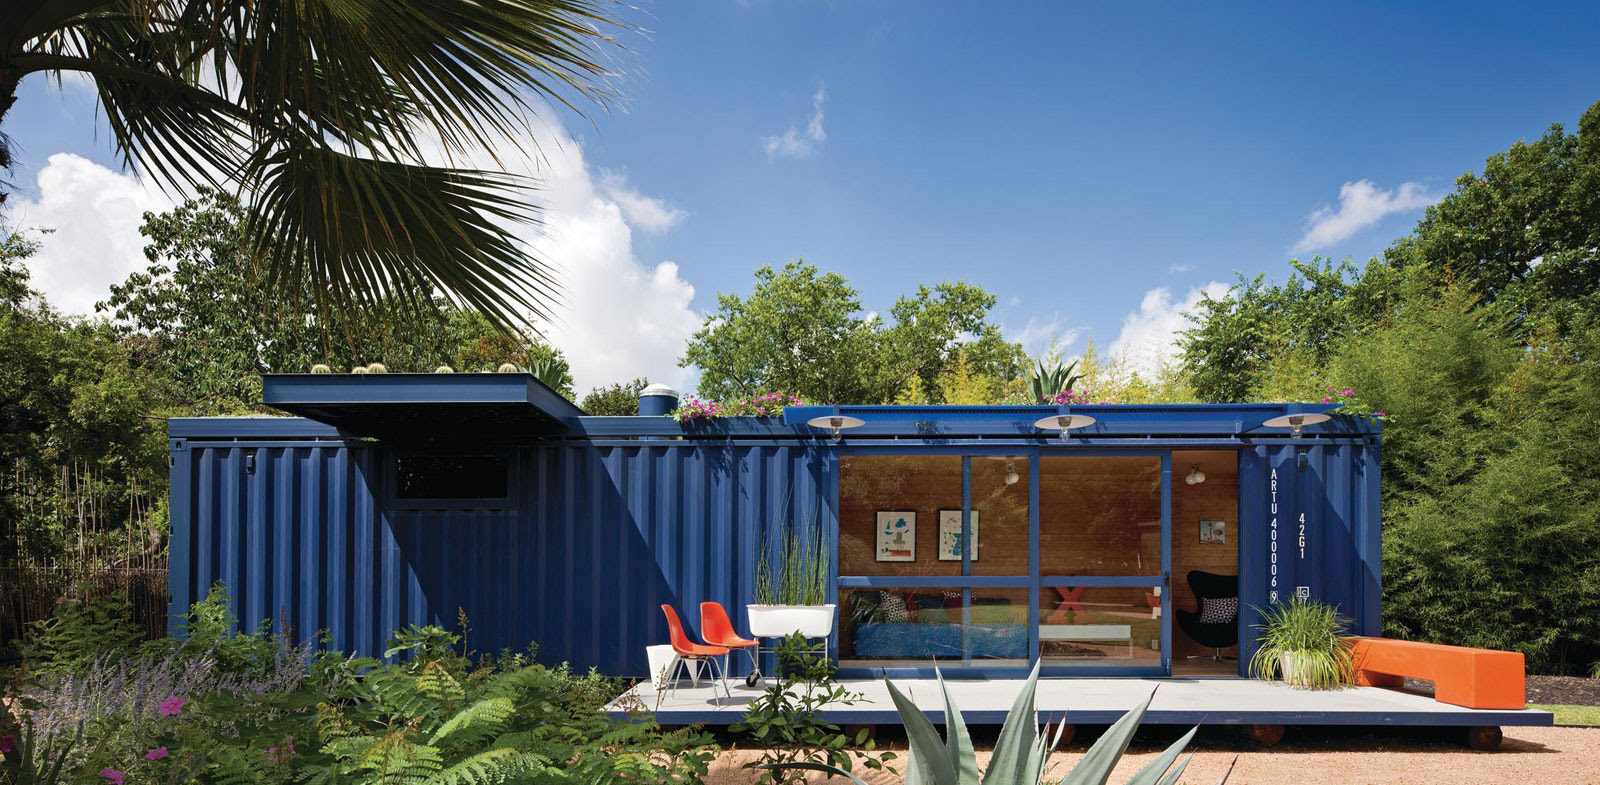 Shipping Container Guest House by Jim Poteet | HomeDSGN, a daily ...